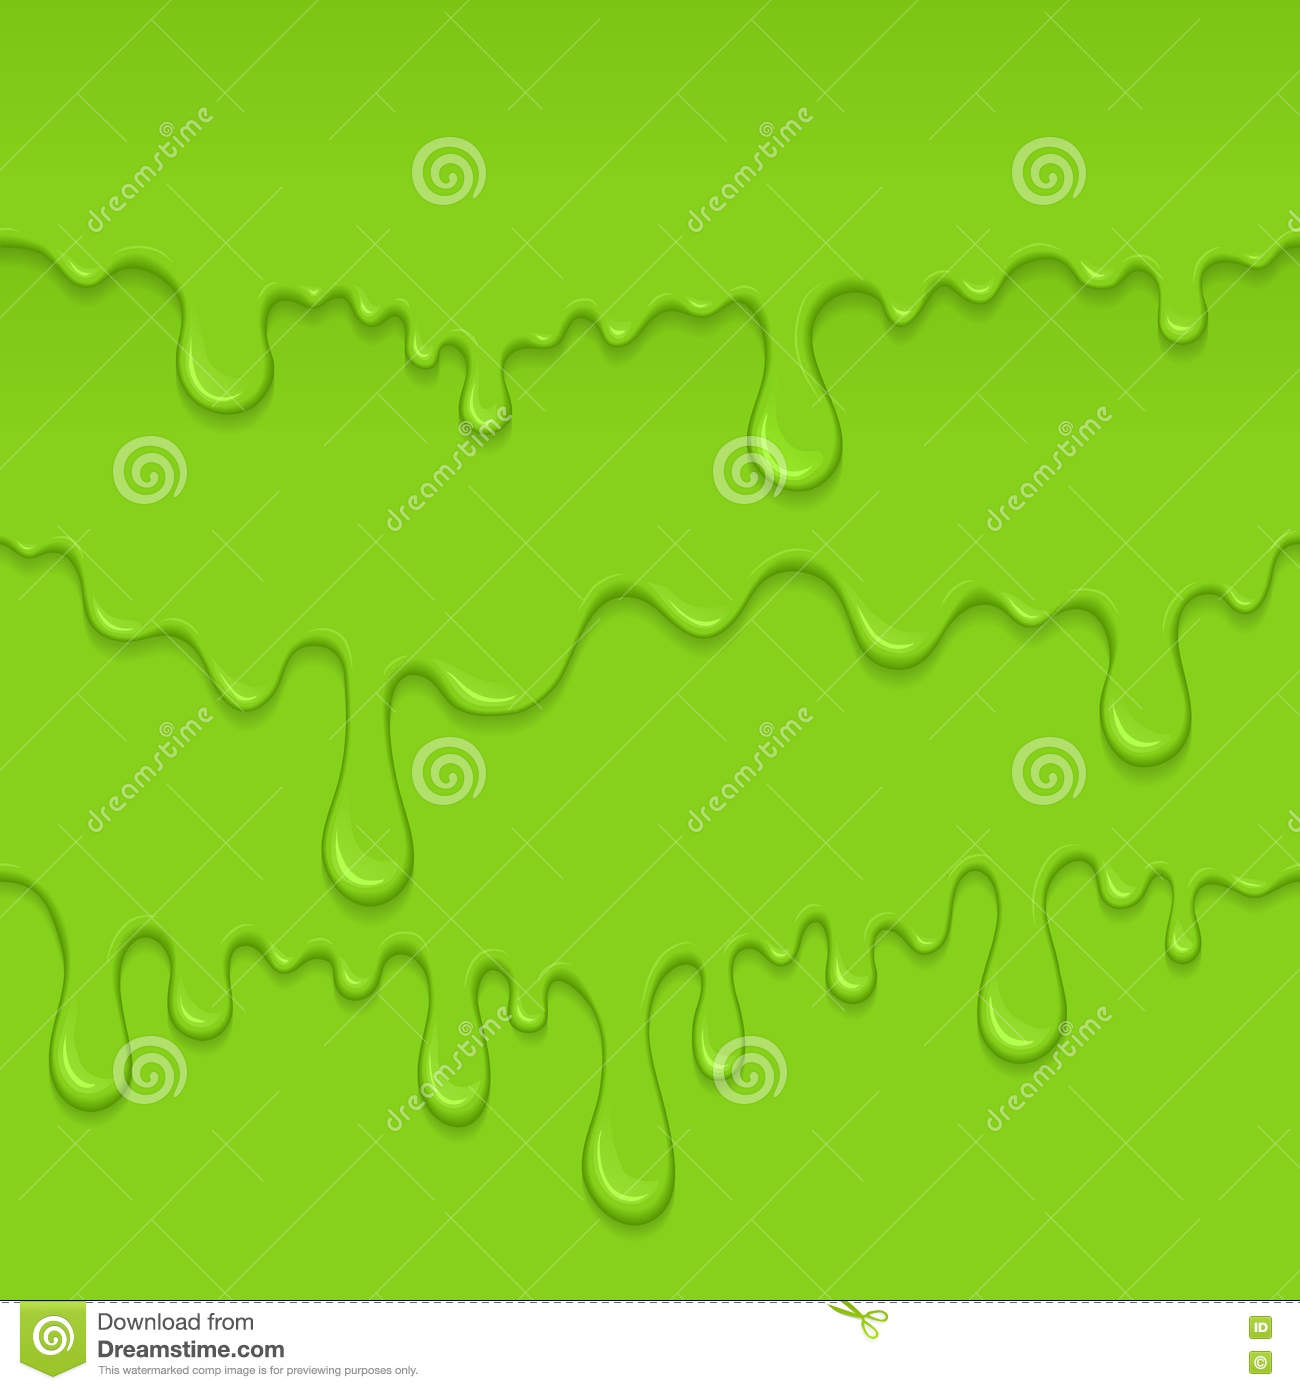 Background of dribble green slime.